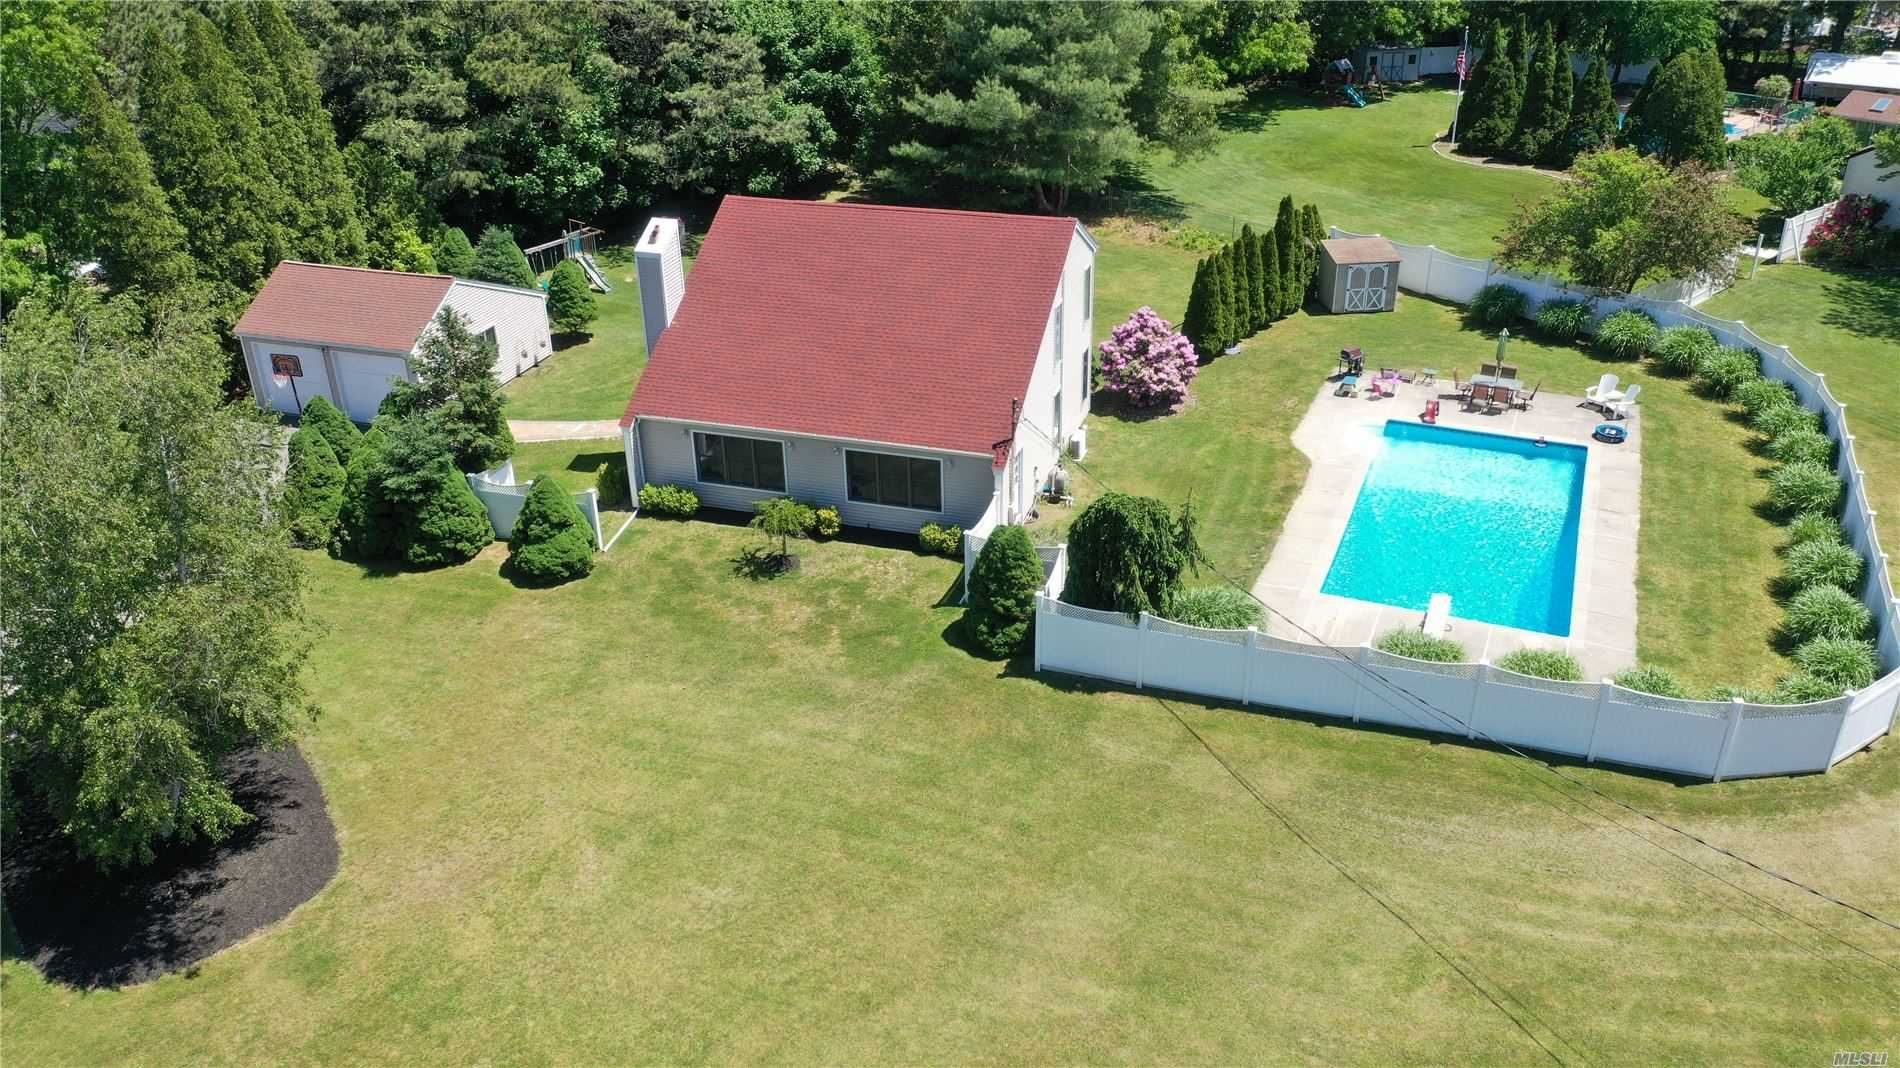 10 Farm Road, Wading River, NY 11792 - MLS#: 3208160